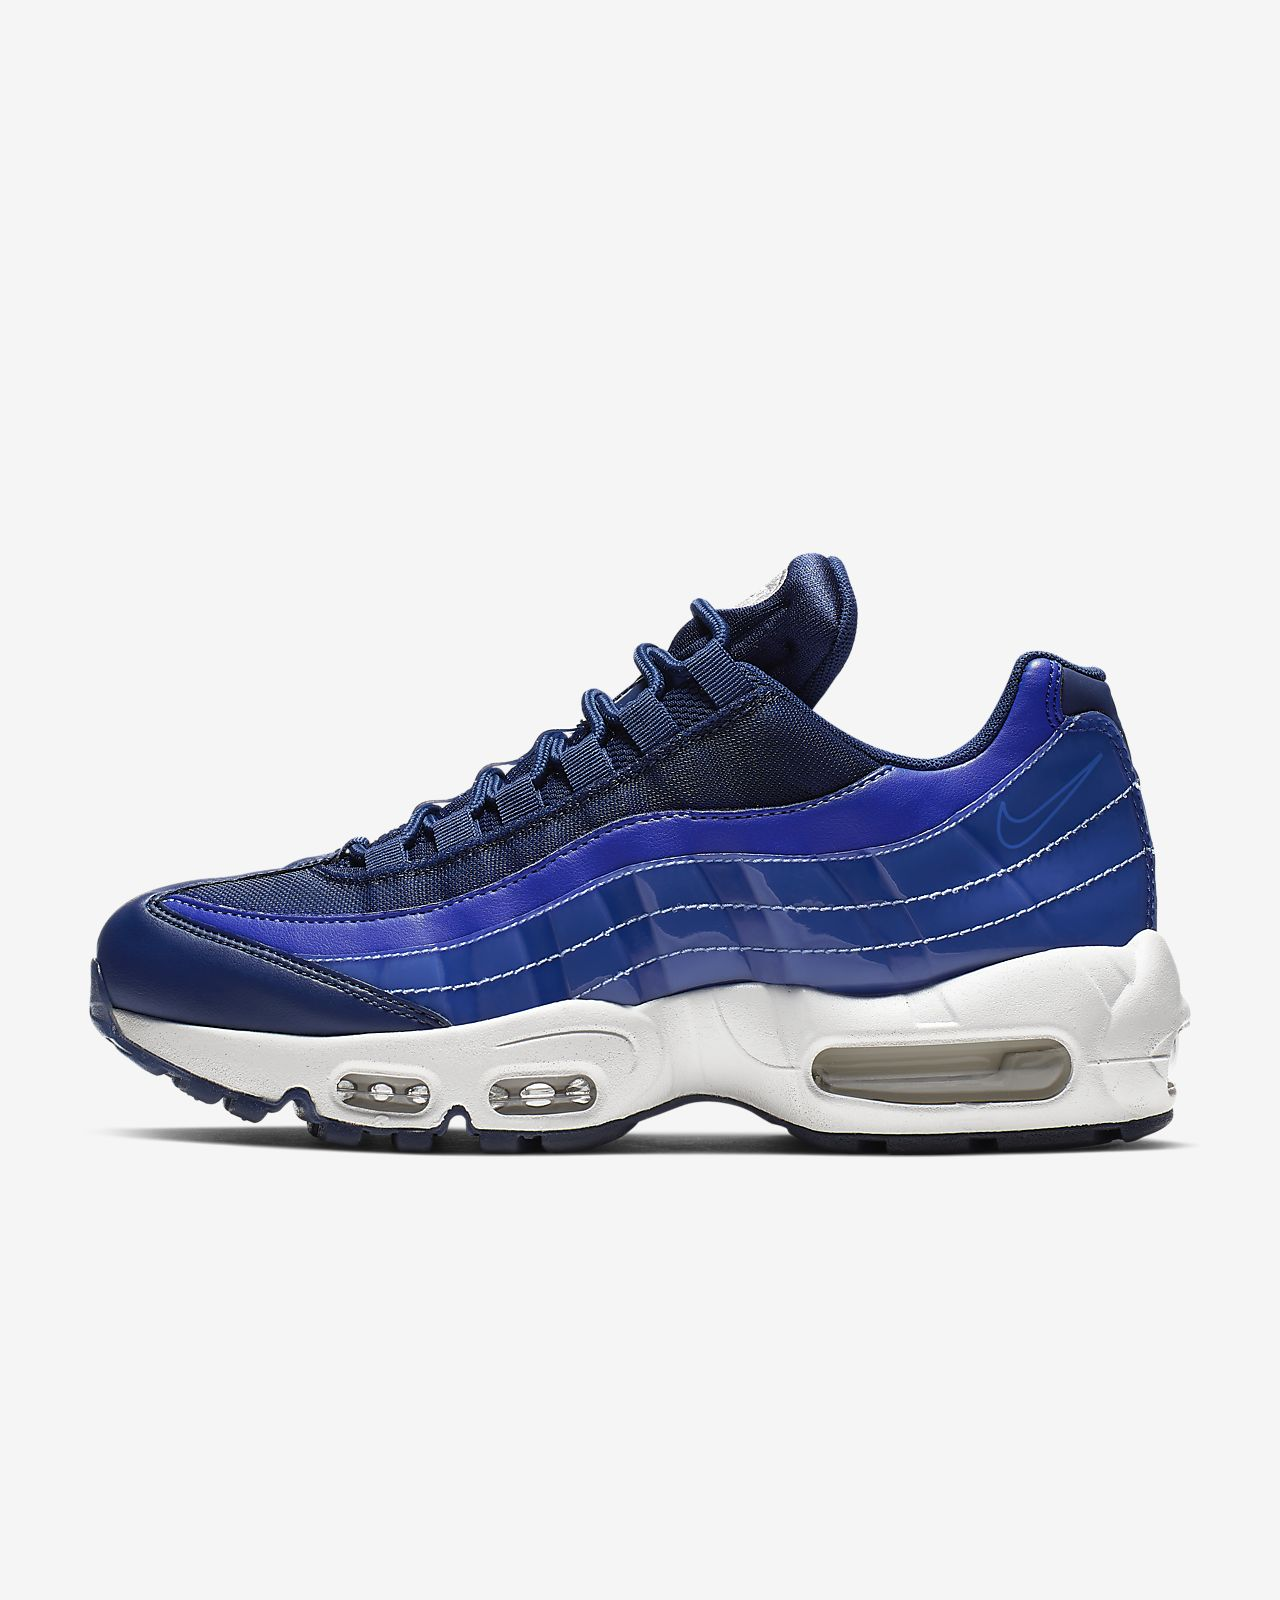 new style c90a5 b8c76 ... Nike Air Max 95 SE Women s Shoe